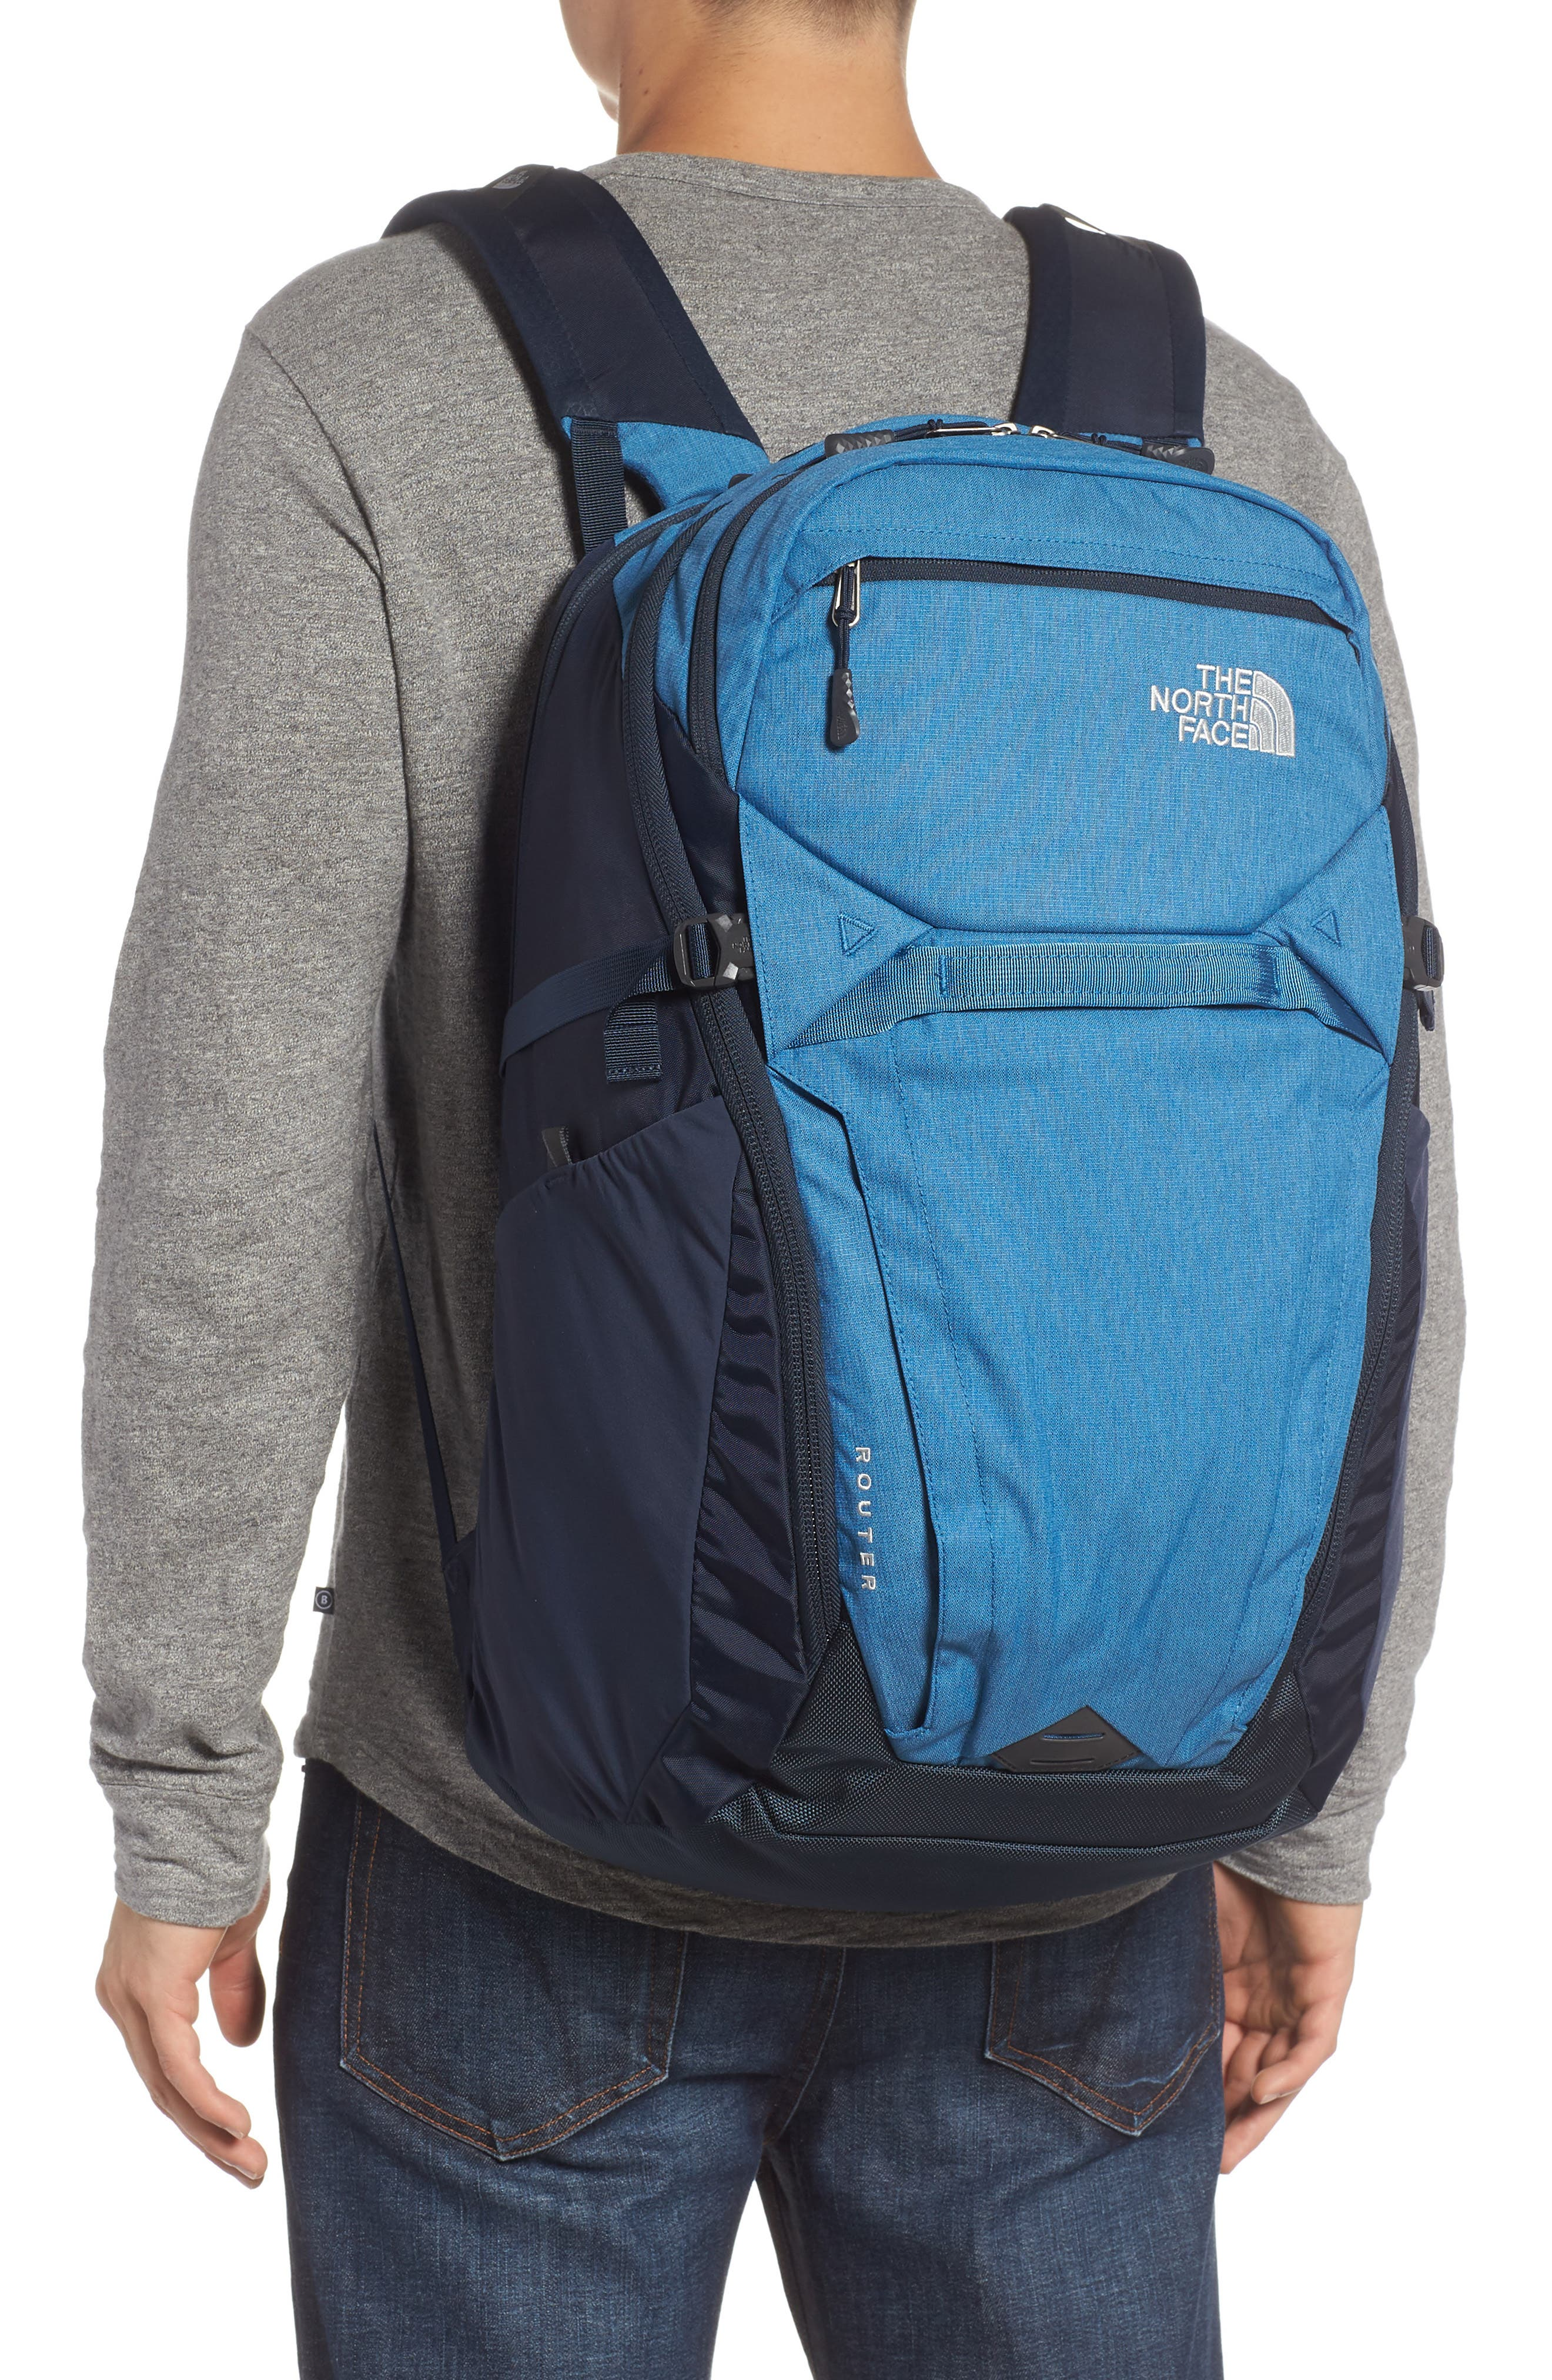 Router Backpack,                             Alternate thumbnail 2, color,                             DISH BLUE HEATHER/ URBAN NAVY